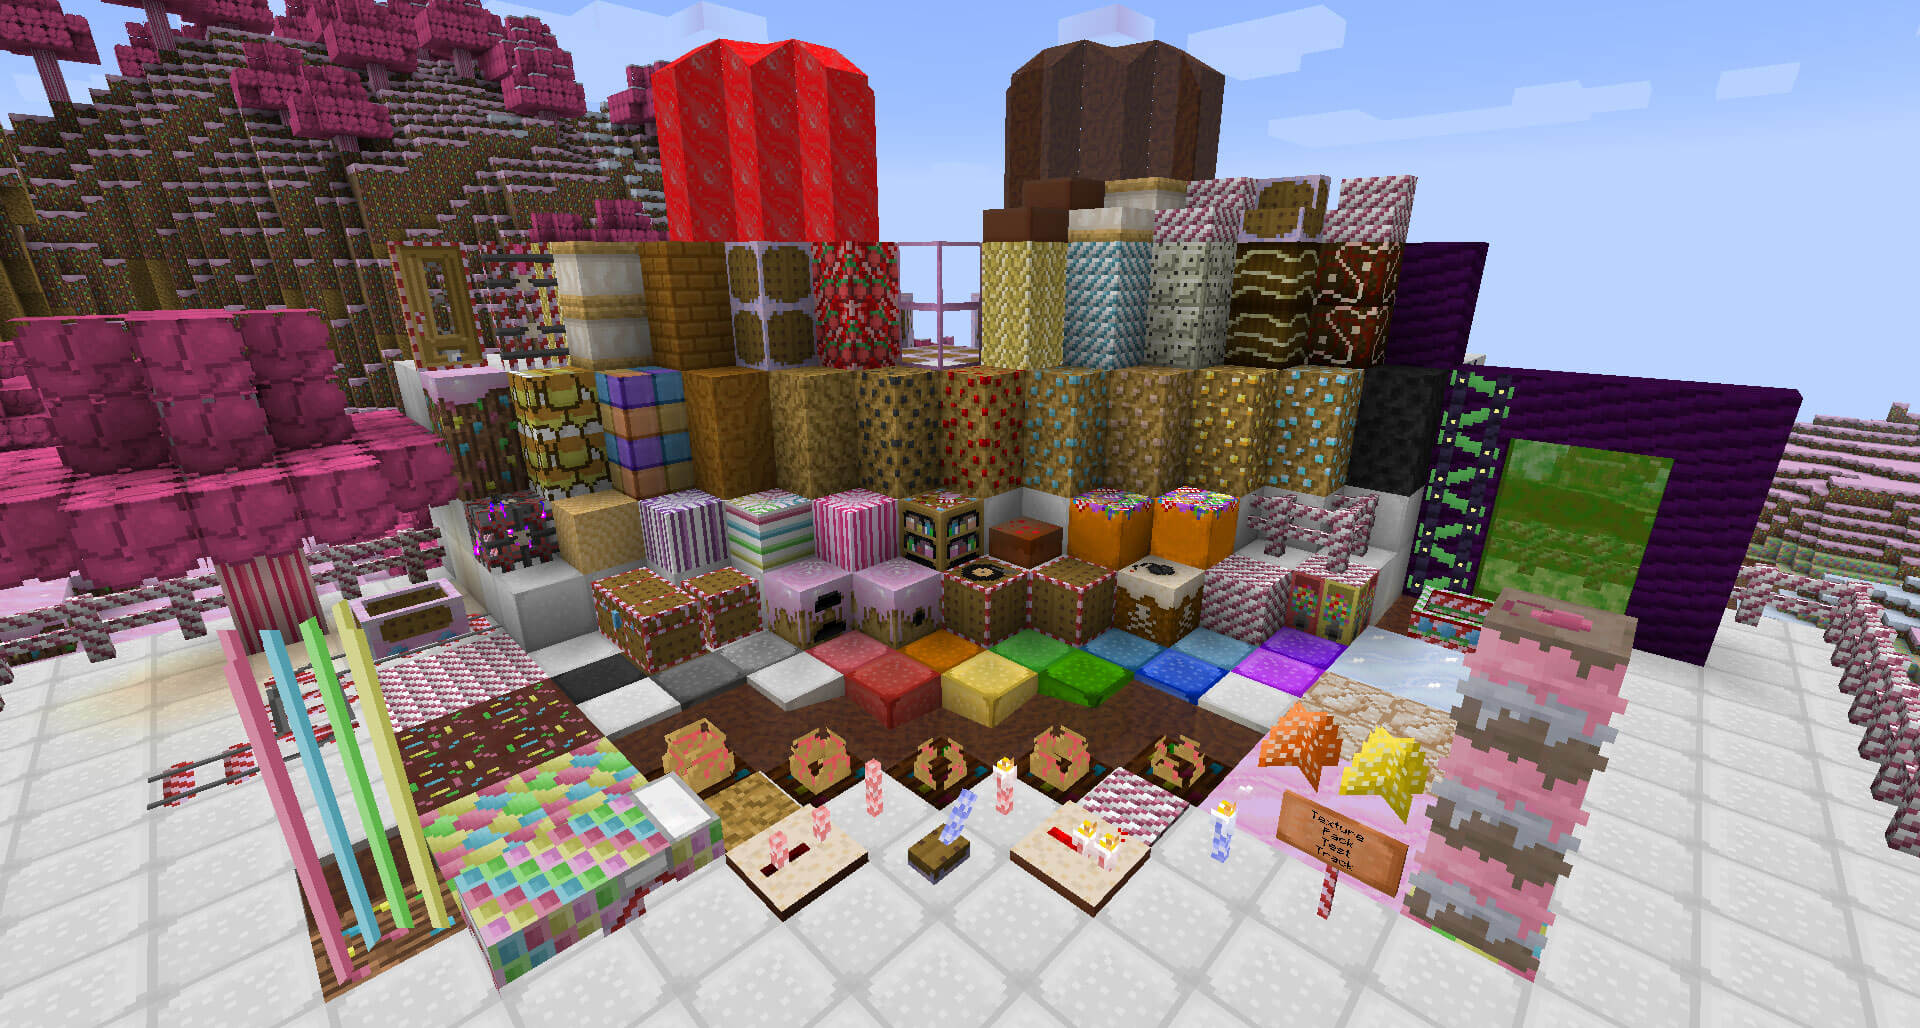 minecraft sweetens up its ios android and windows 10 versions with candy texture pack gamesbeat. Black Bedroom Furniture Sets. Home Design Ideas